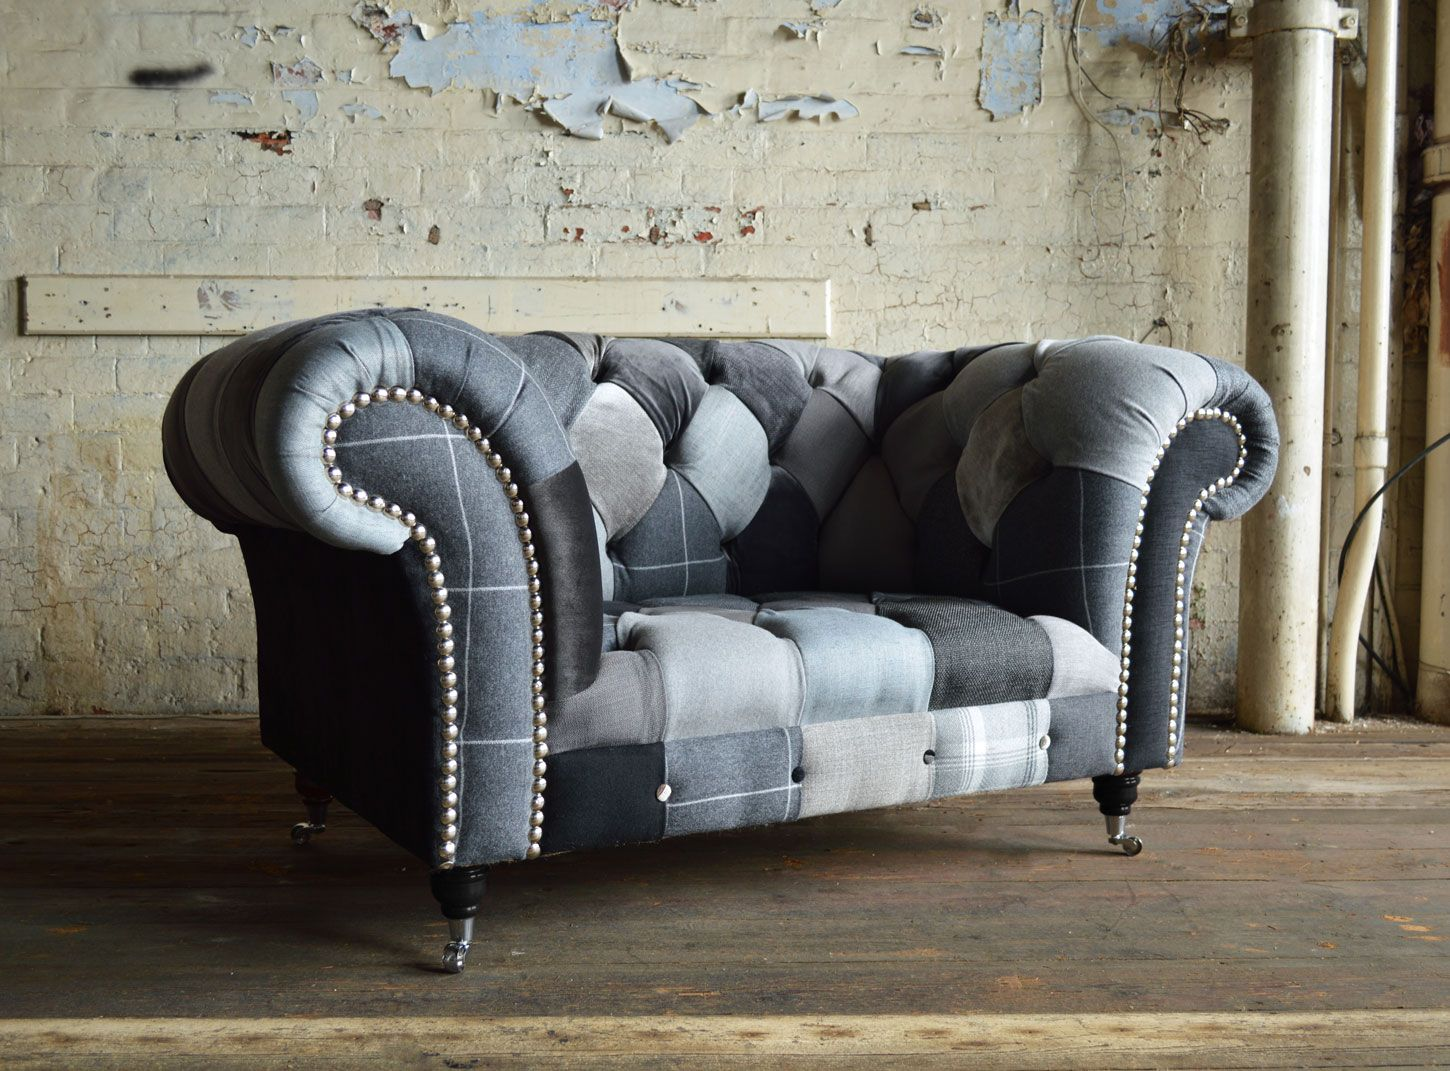 Modern British And Handmade Bold Ghost Patchwork Chesterfield Snuggle Chair Totally Unique Fabric Shown In A Range Of Monochrome Colours